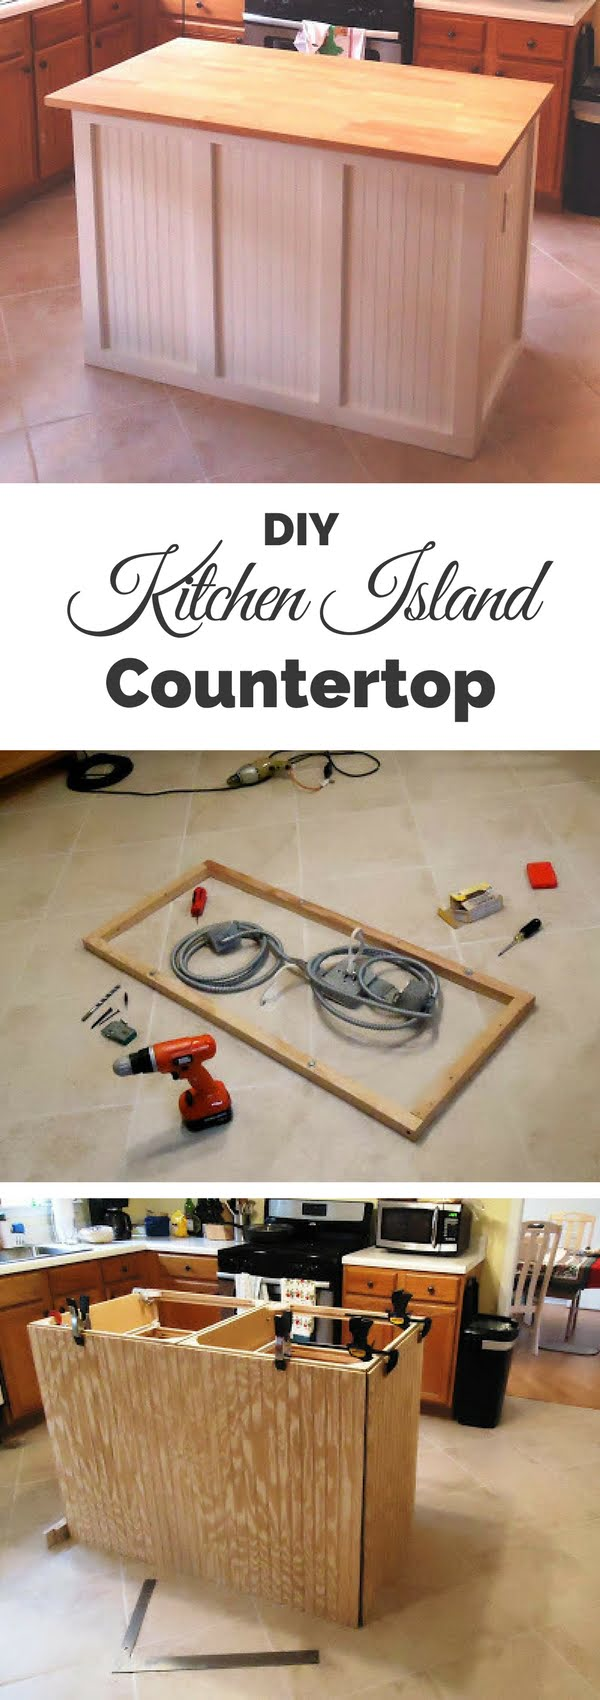 25 Easy DIY Kitchen Island Ideas That You Can Build on a Budget - Check out the tutorial on how to build a DIY countertop kitchen island